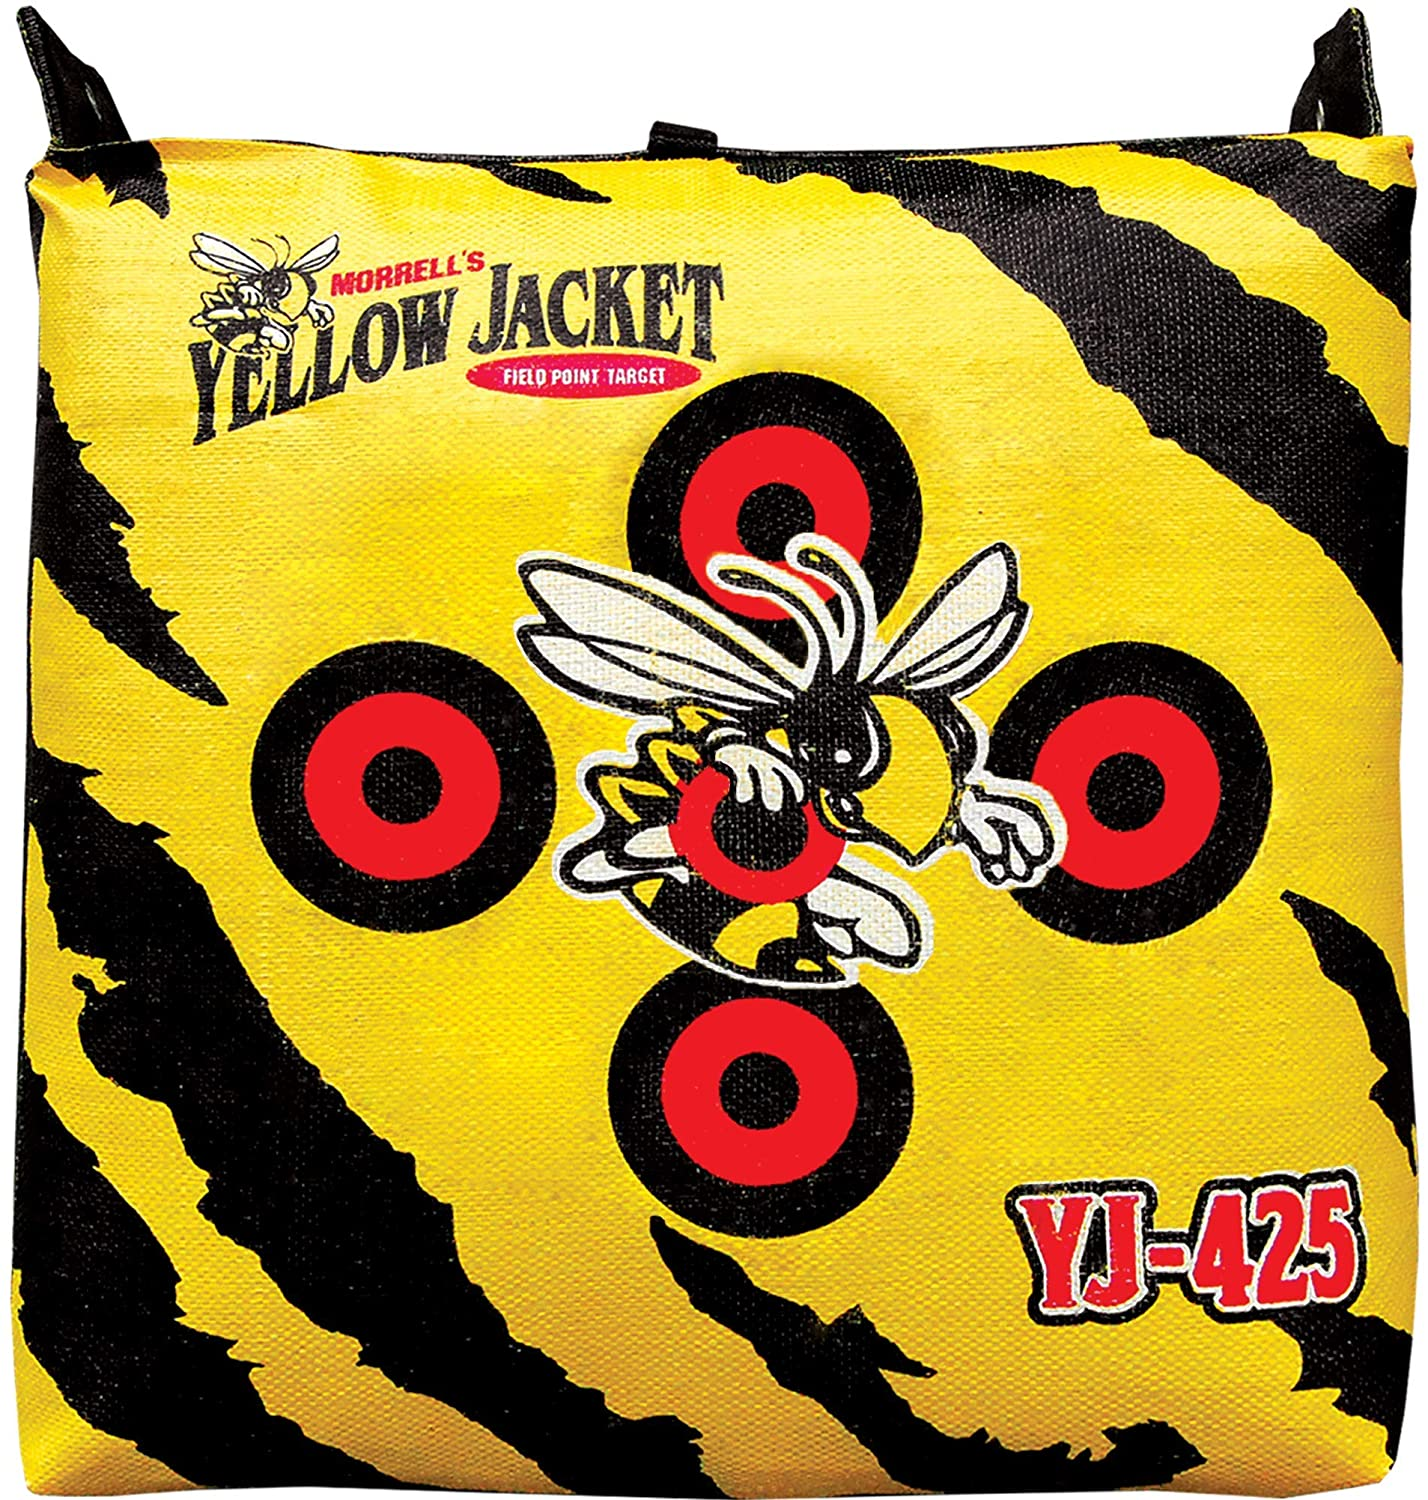 Best Morrell Yellow Jacket Target Bag for 2021